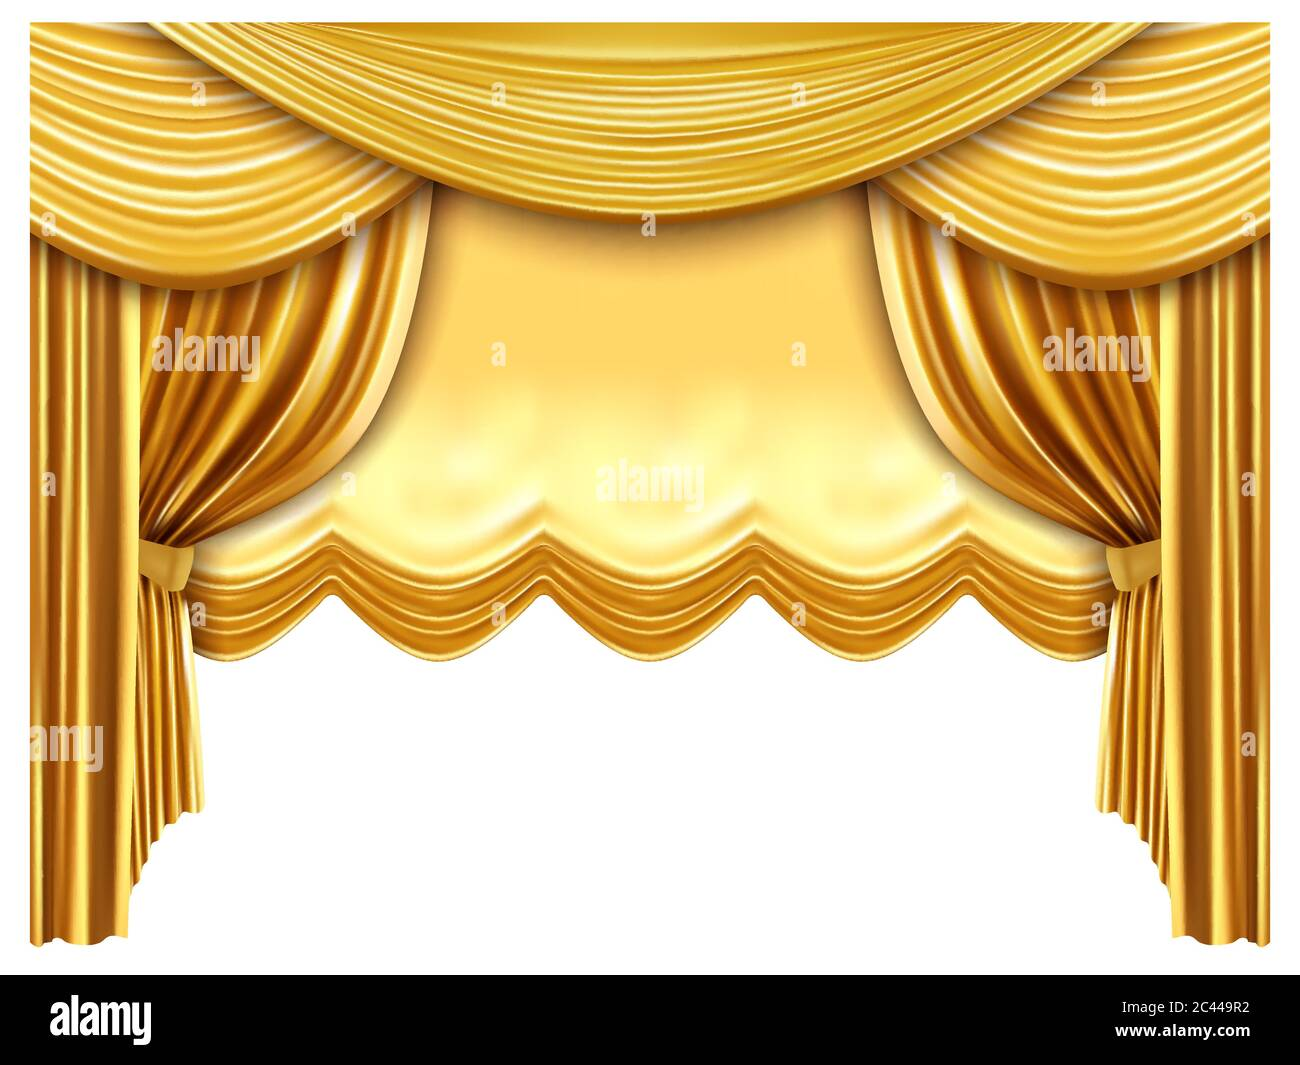 Golden Stage Curtain Realistic Silk Curtains Luxury Opera Scene Backdrop Gold Opera Theater Scene Portiere Drapes Vector Illustration Stock Vector Image Art Alamy